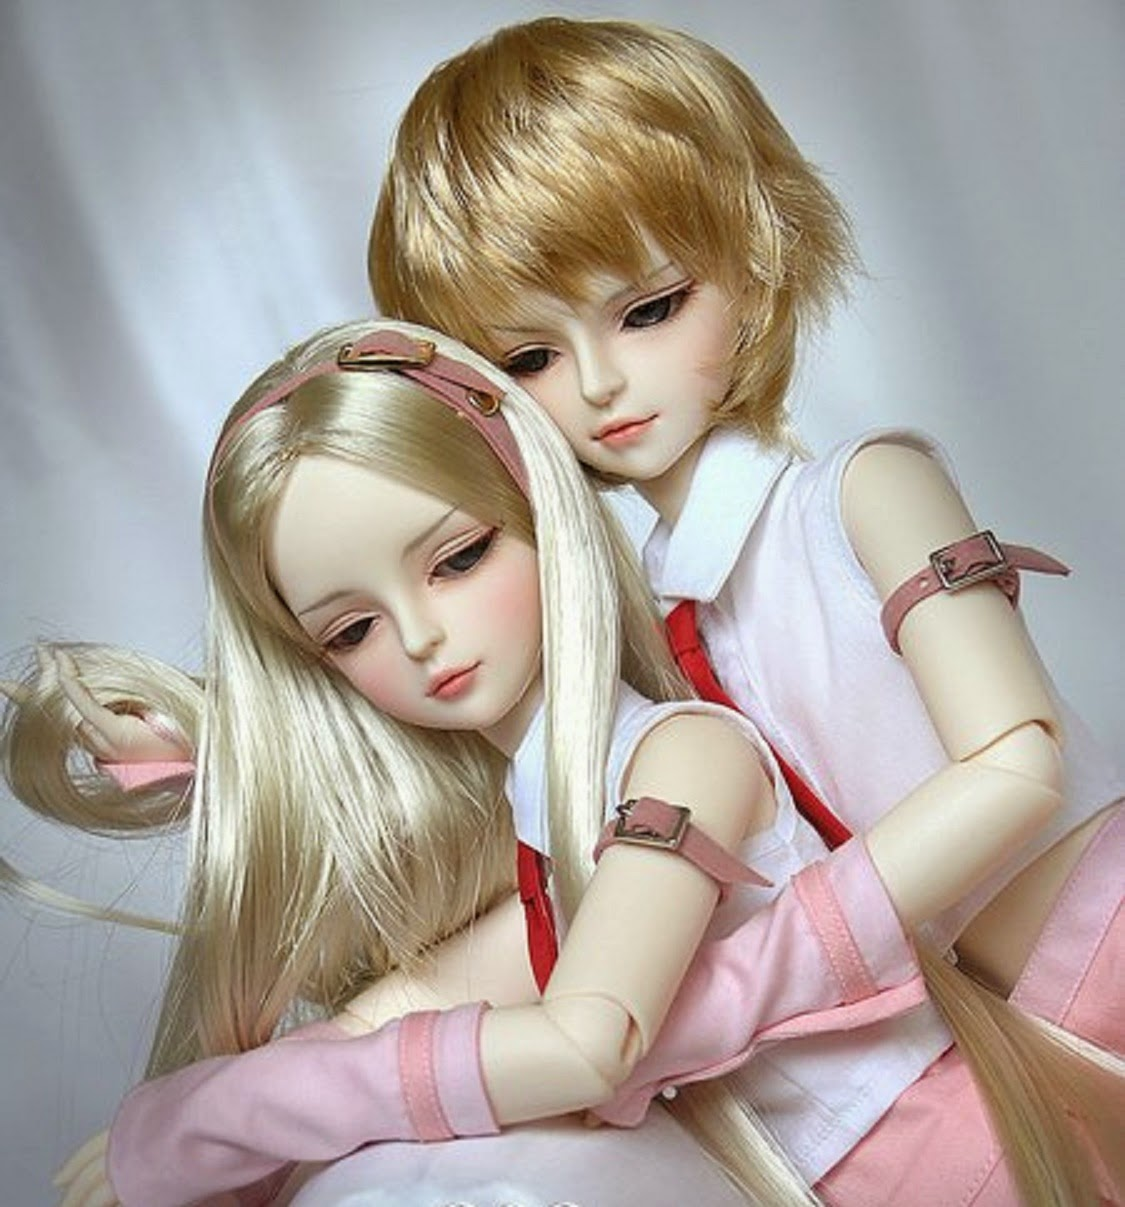 Very Smart Couple Barbie Doll Wallpaper Free All Hd Wallpapers